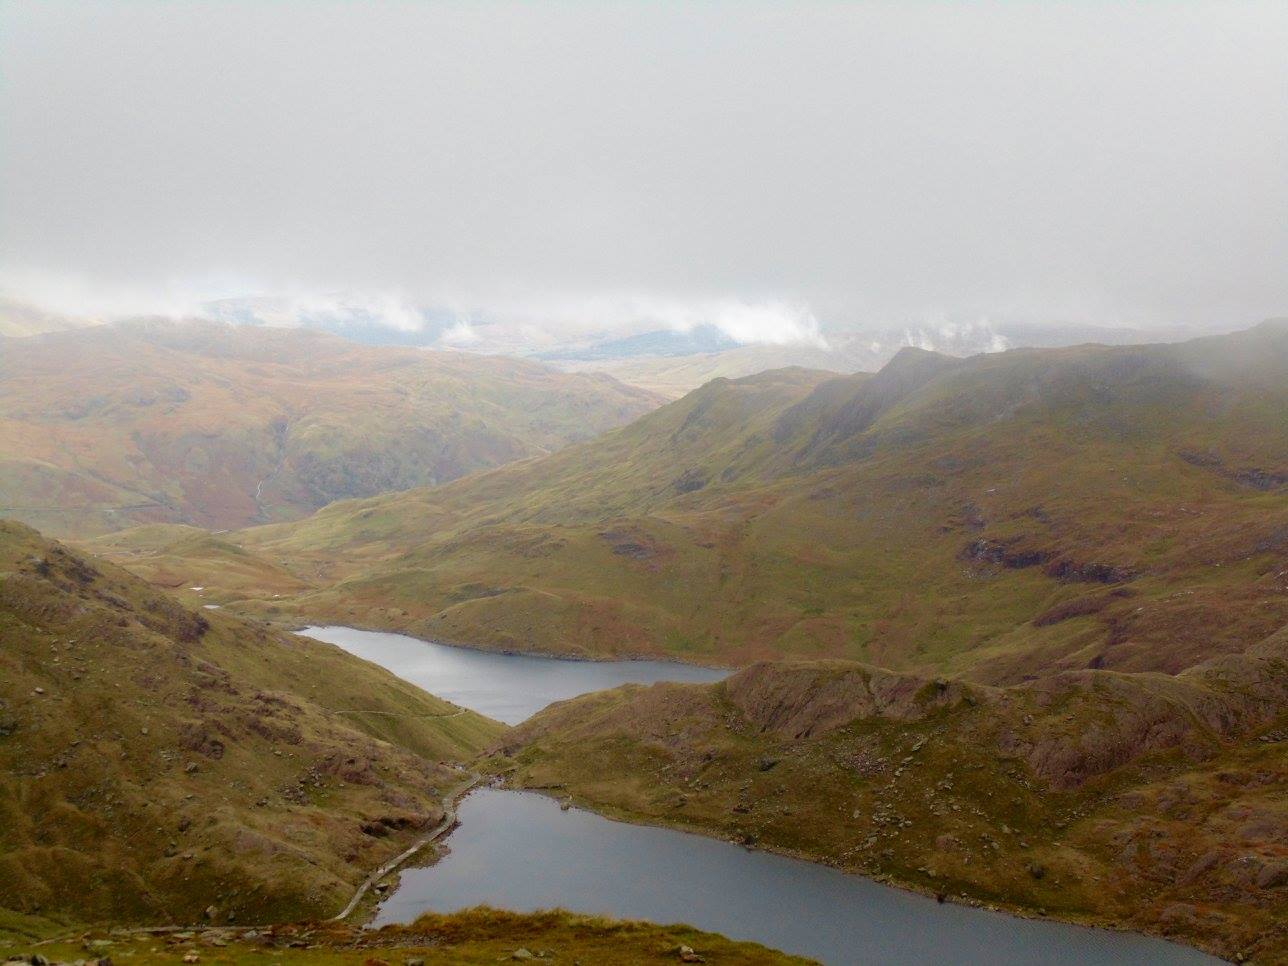 A view of the miners track, alongside the lake Llyn Glaslyn